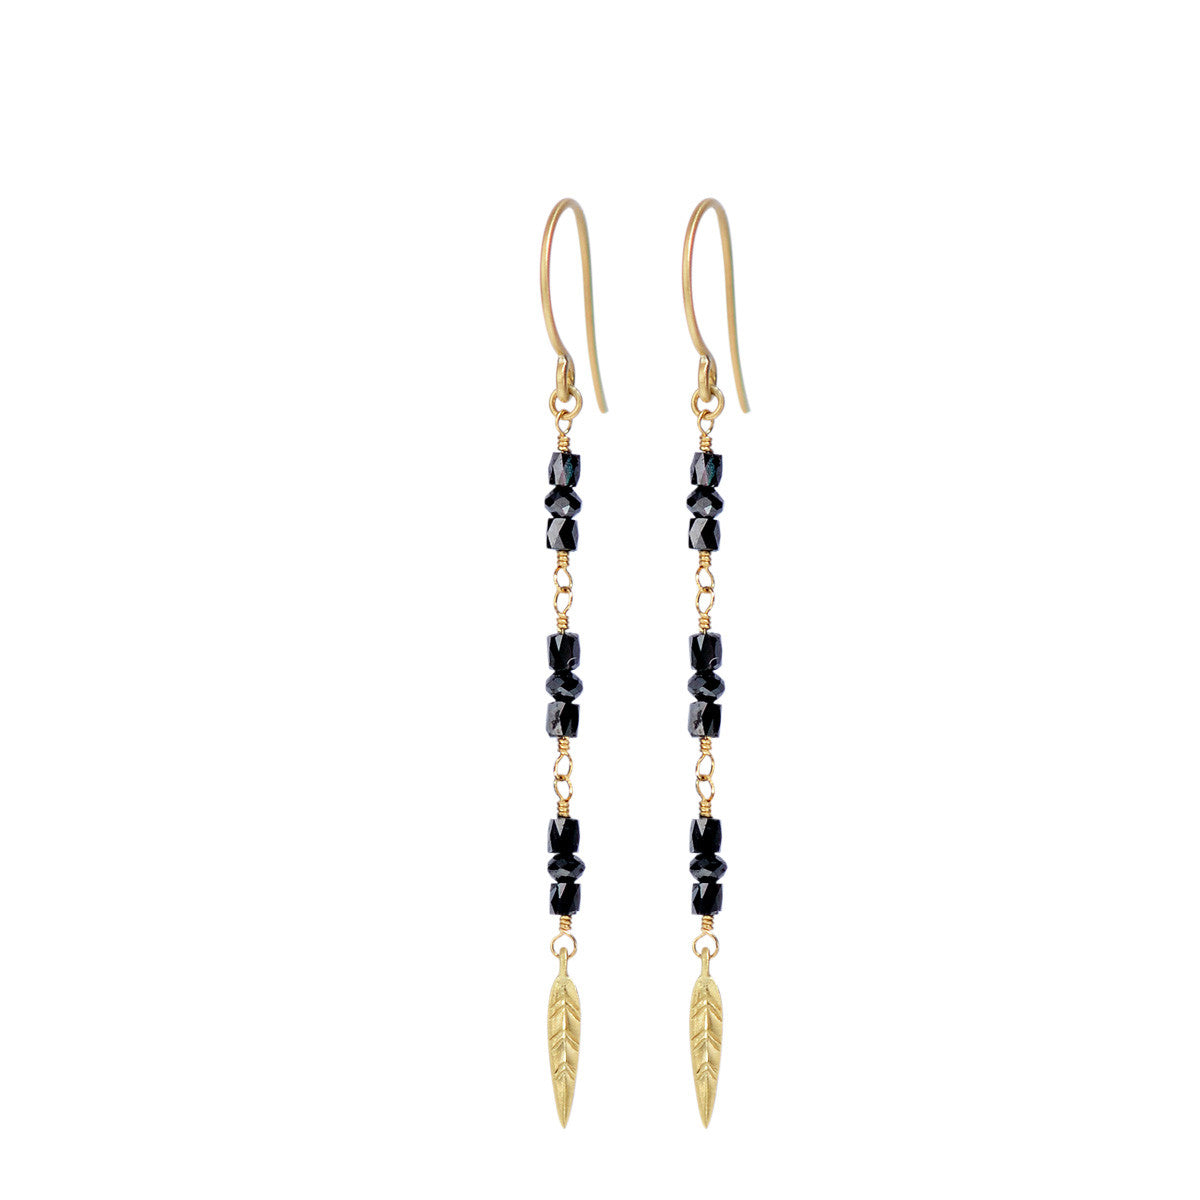 18K Gold Long Black Diamond Earrings with Feathers